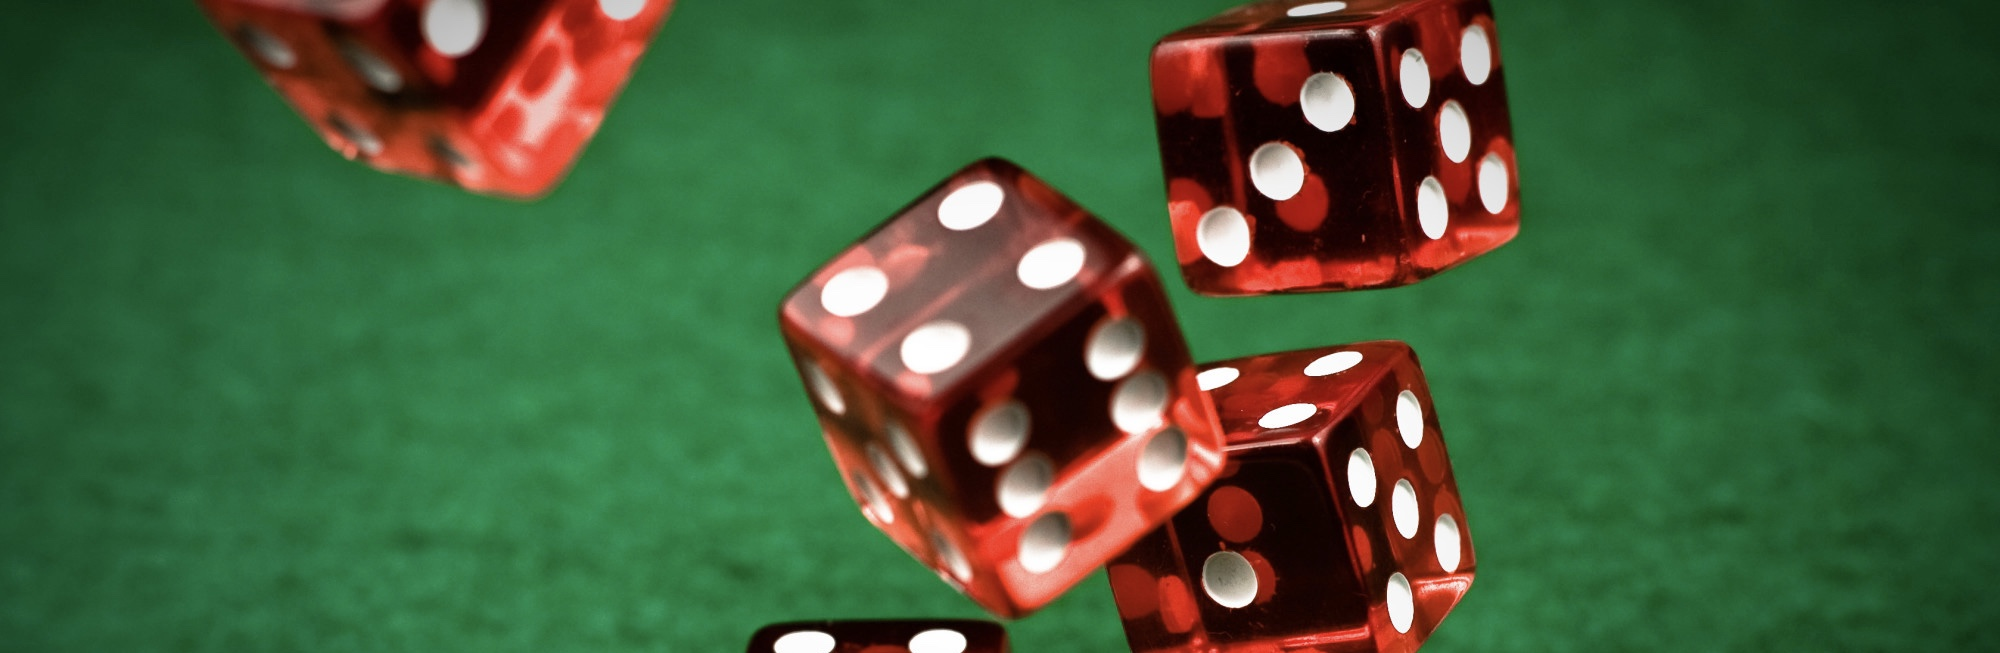 GDPR Sees Online Players in High-Stakes Gamble